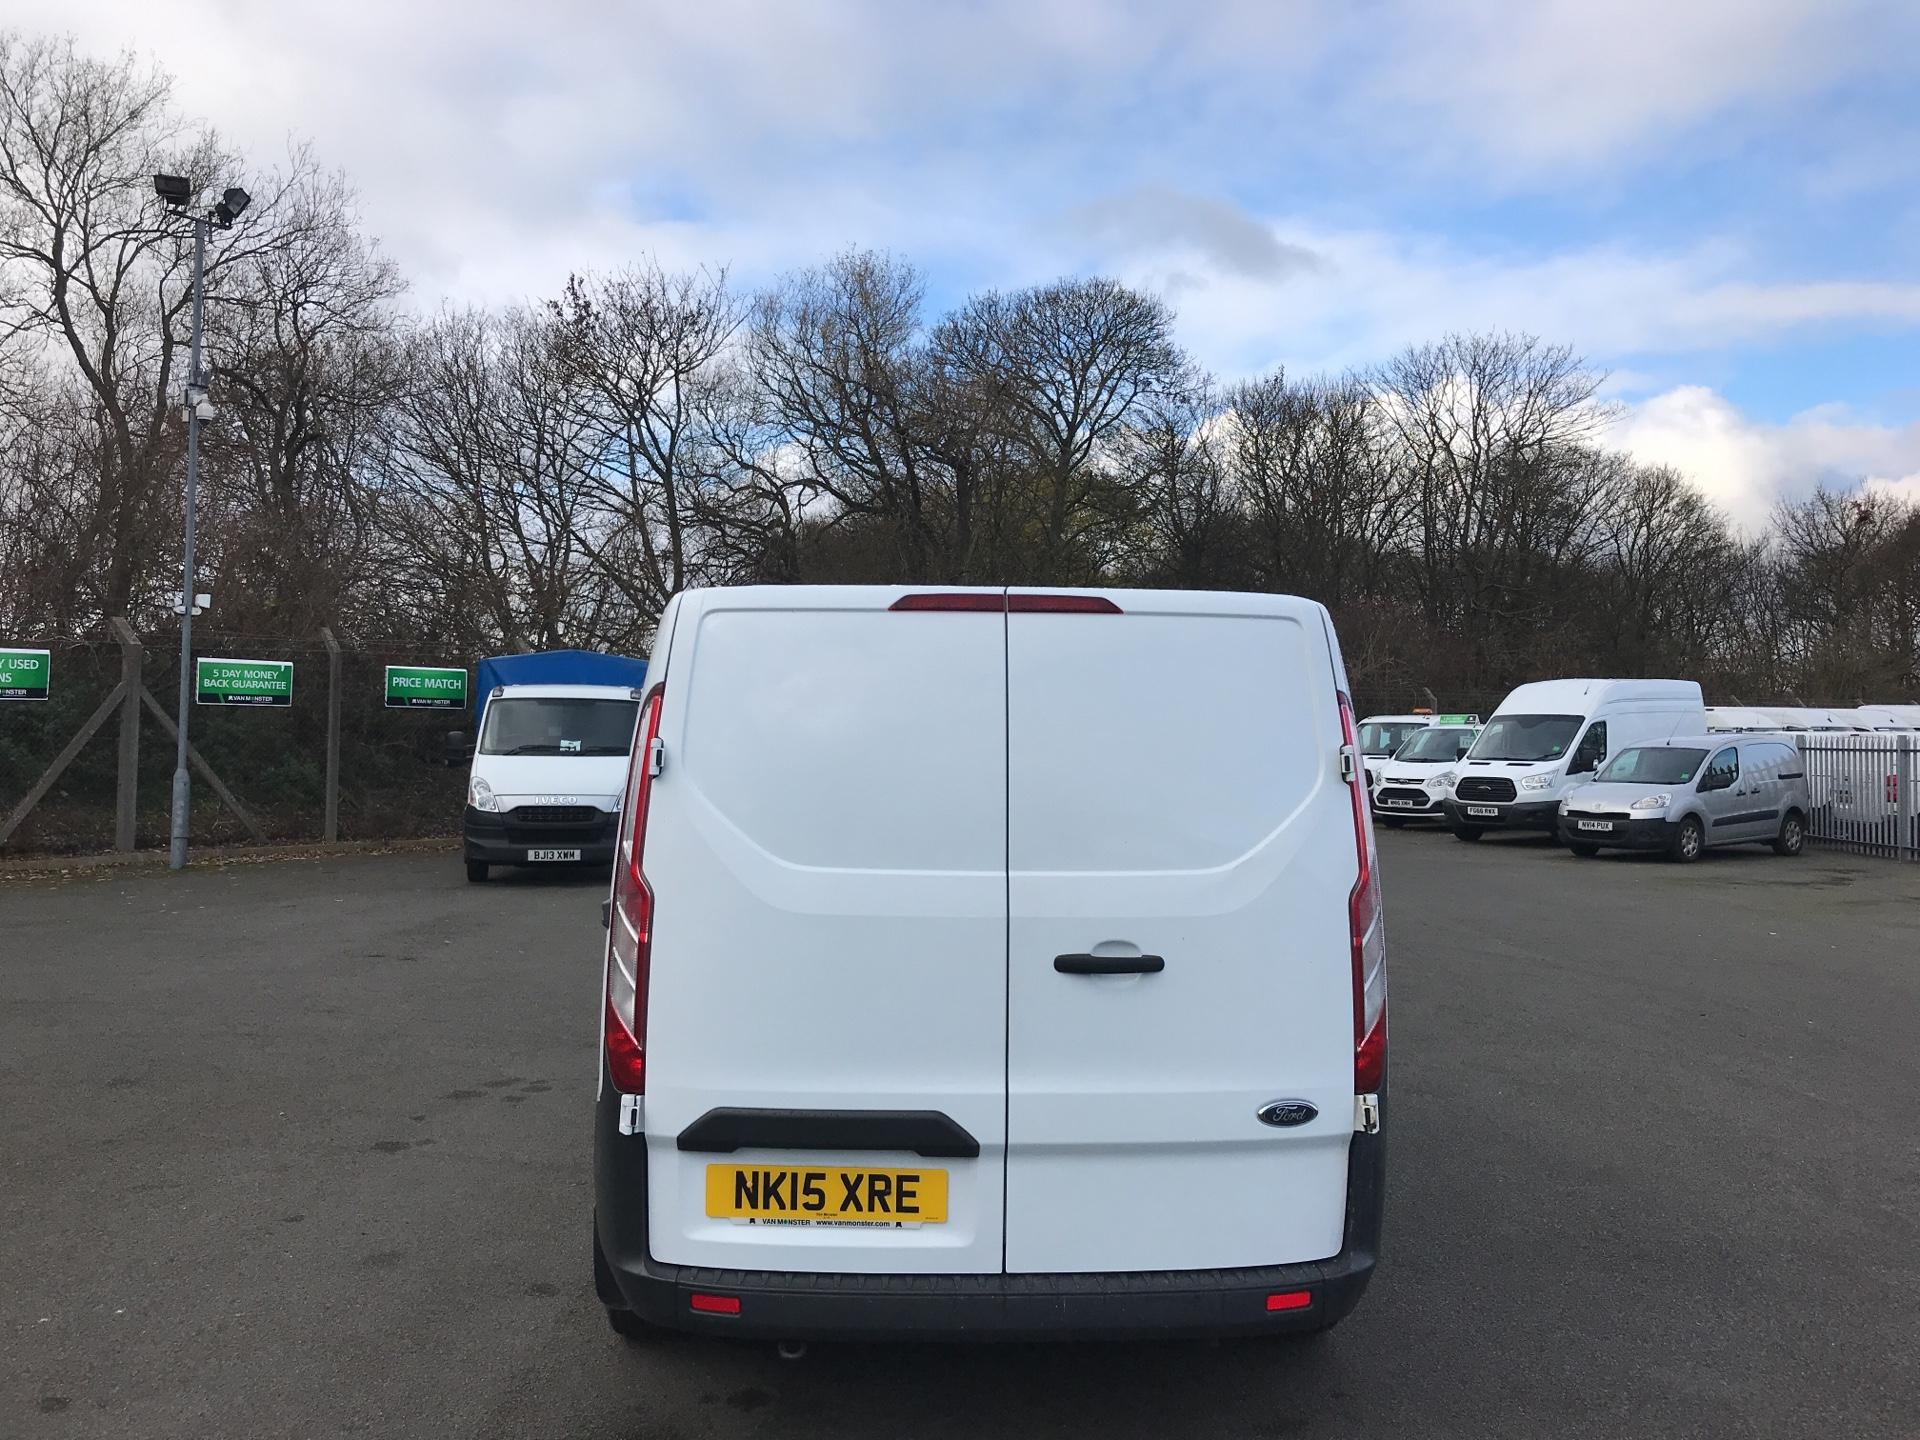 2015 Ford Transit Custom 290 L1 DIESEL FWD 2.2  TDCI 100PS LOW ROOF VAN EURO 5 *VALUE RANGE VEHICLE - CONDITION REFLECTED IN PRICE* (NK15XRE) Image 4